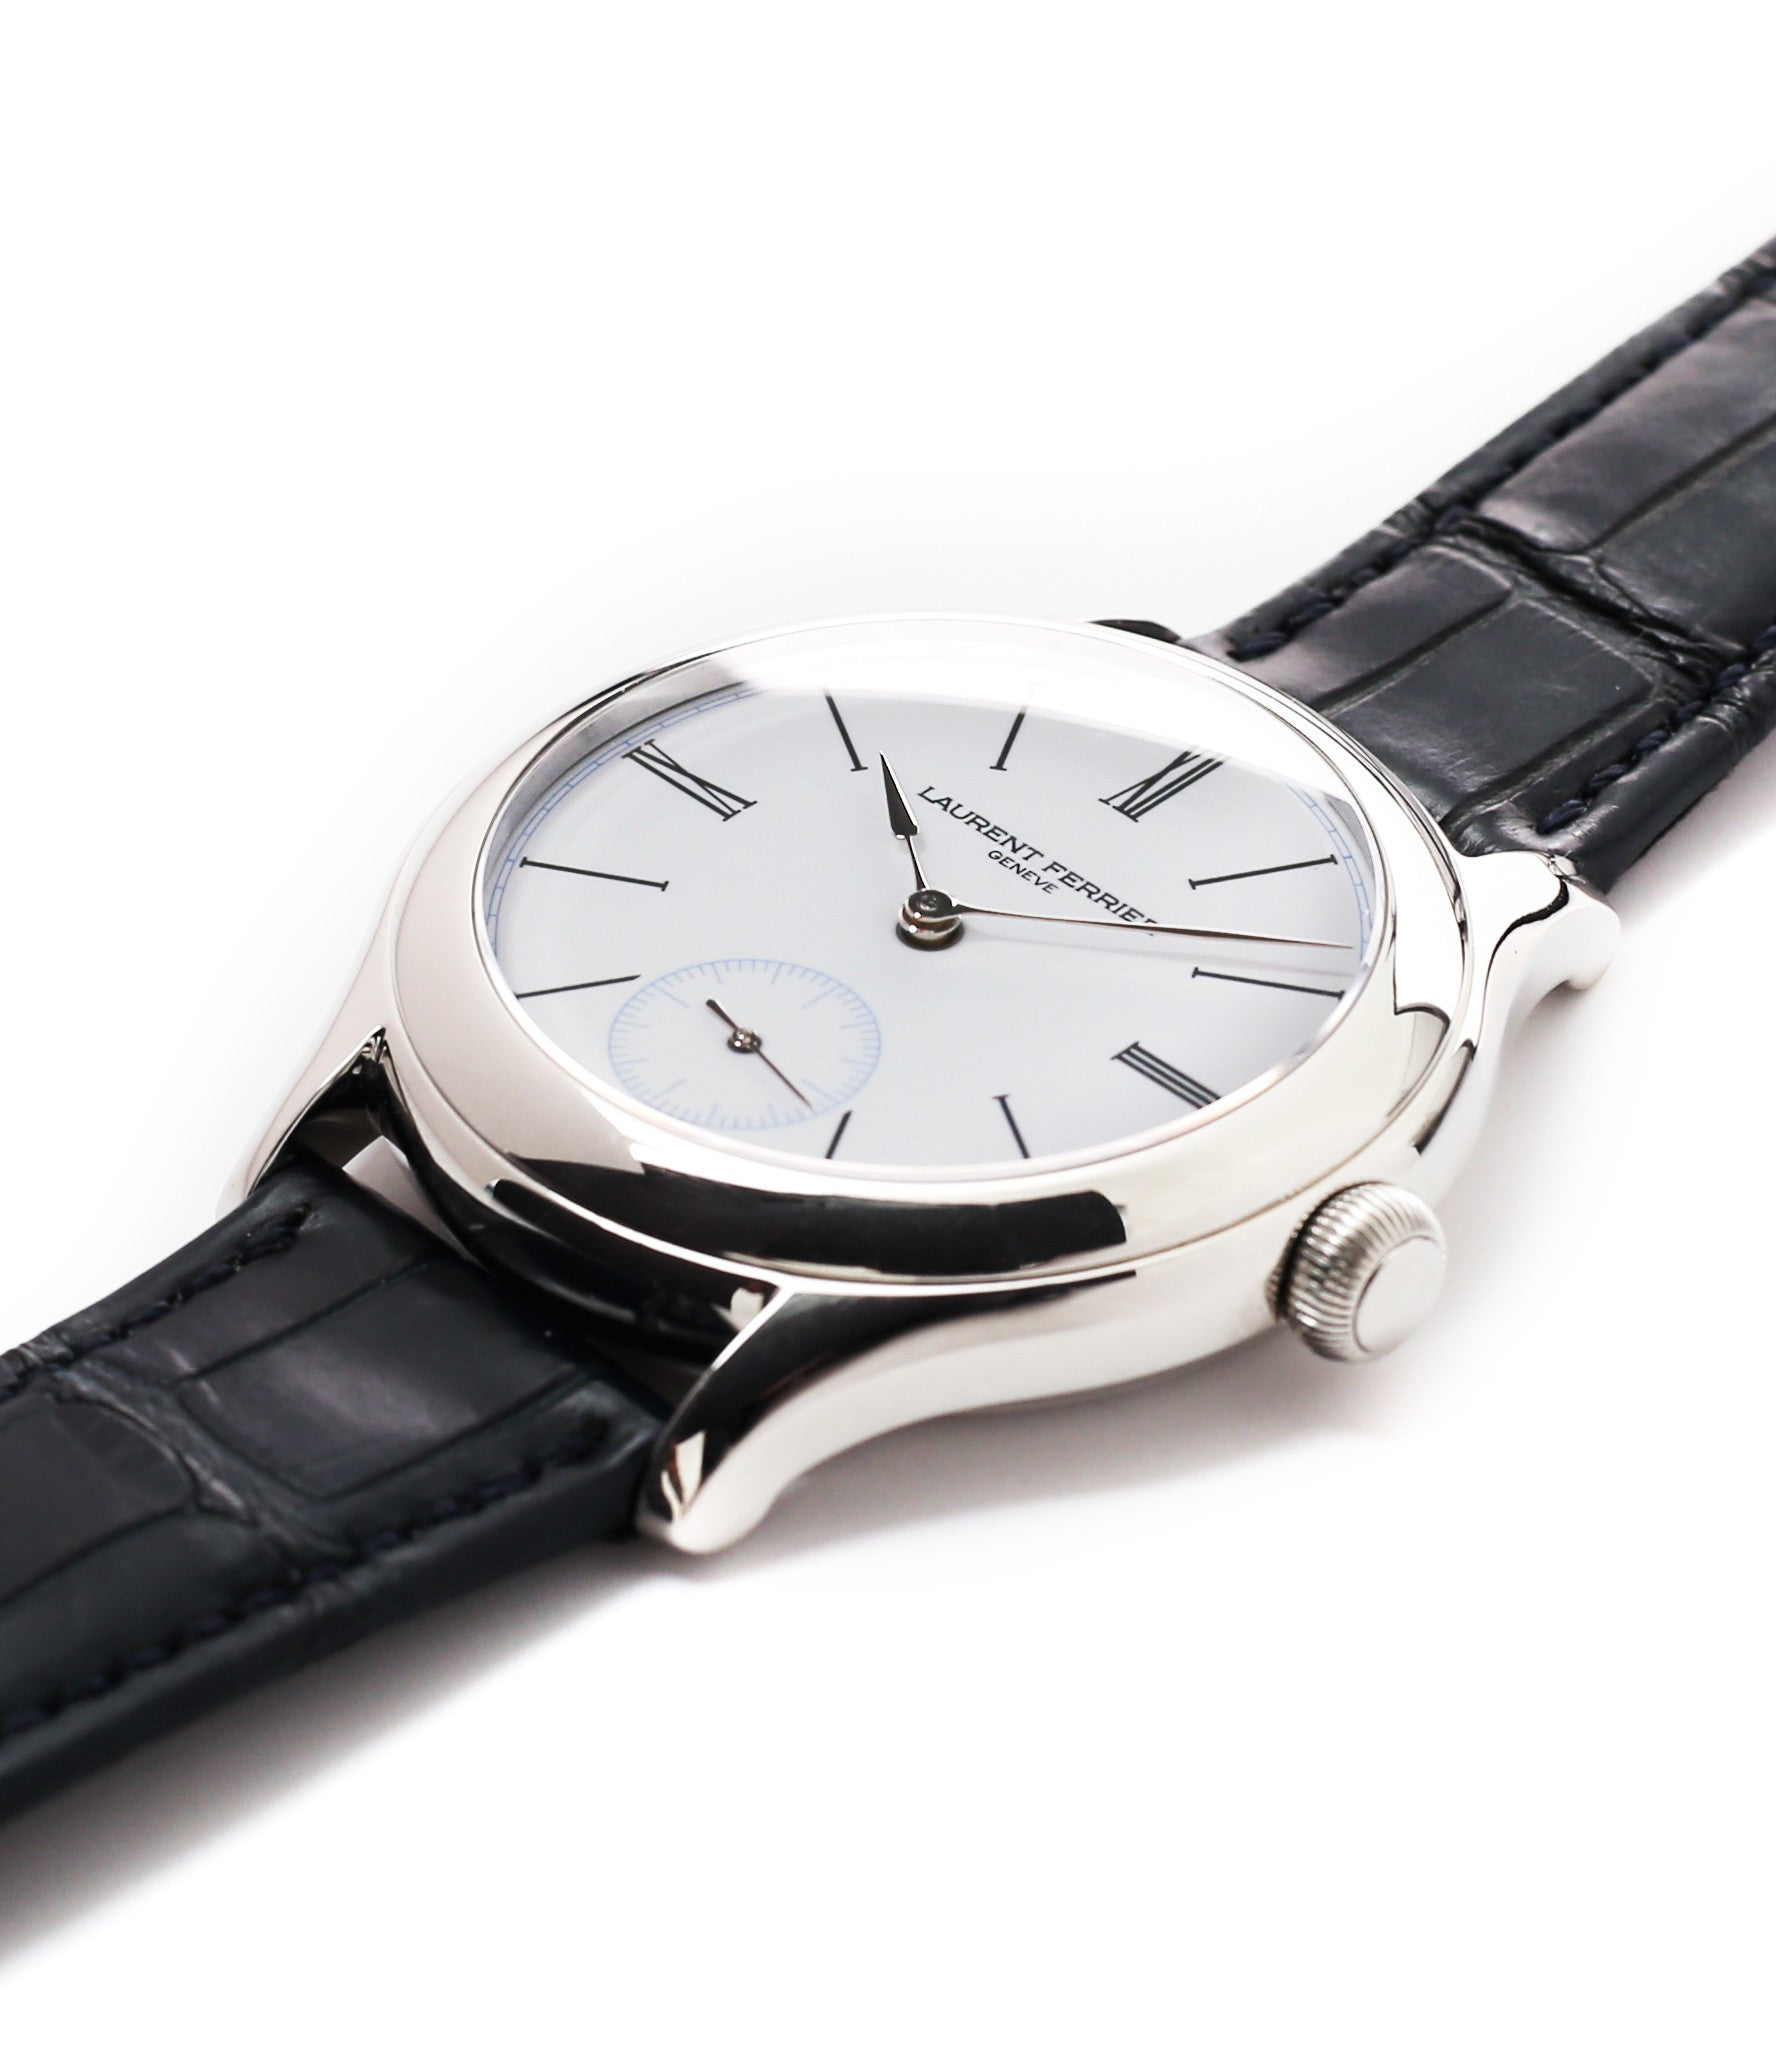 for sale Laurent Ferrier Galet Micro-rotor LCF006 platinum enamel dial limited edition watch for sale online at A Collected Man London specialist independent watchmakers